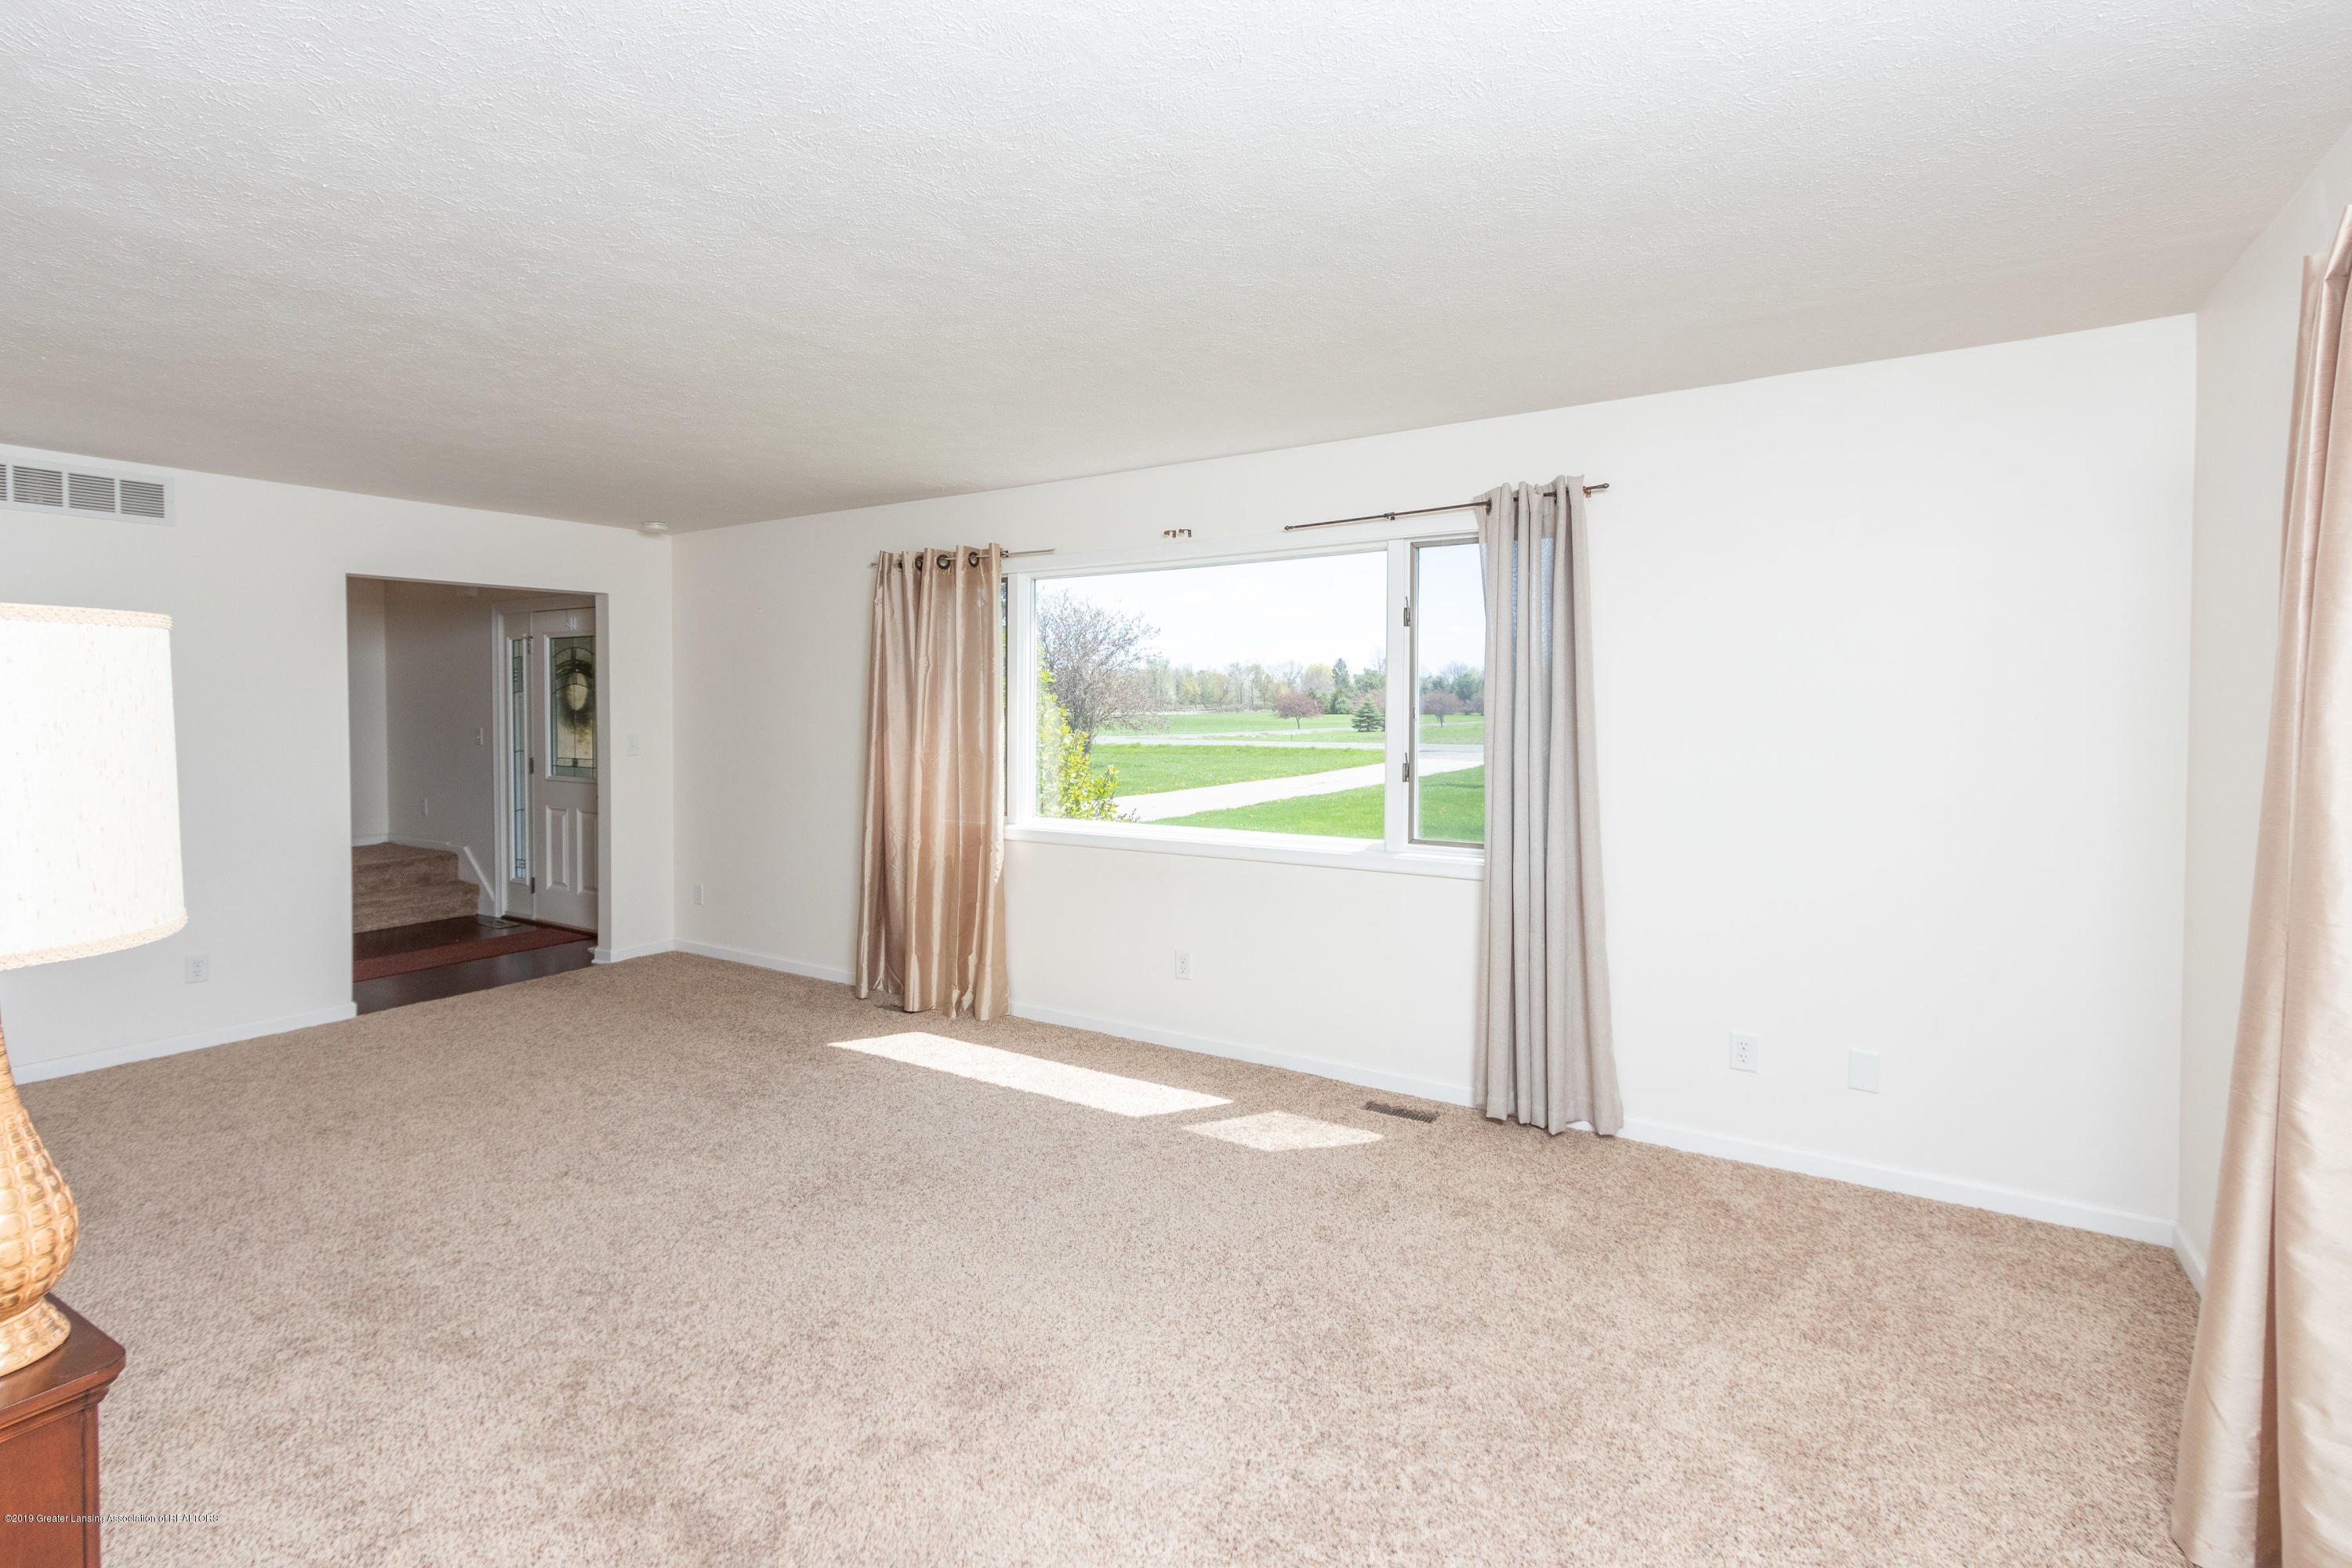 415 Holt Rd - Pretty picture window - 15